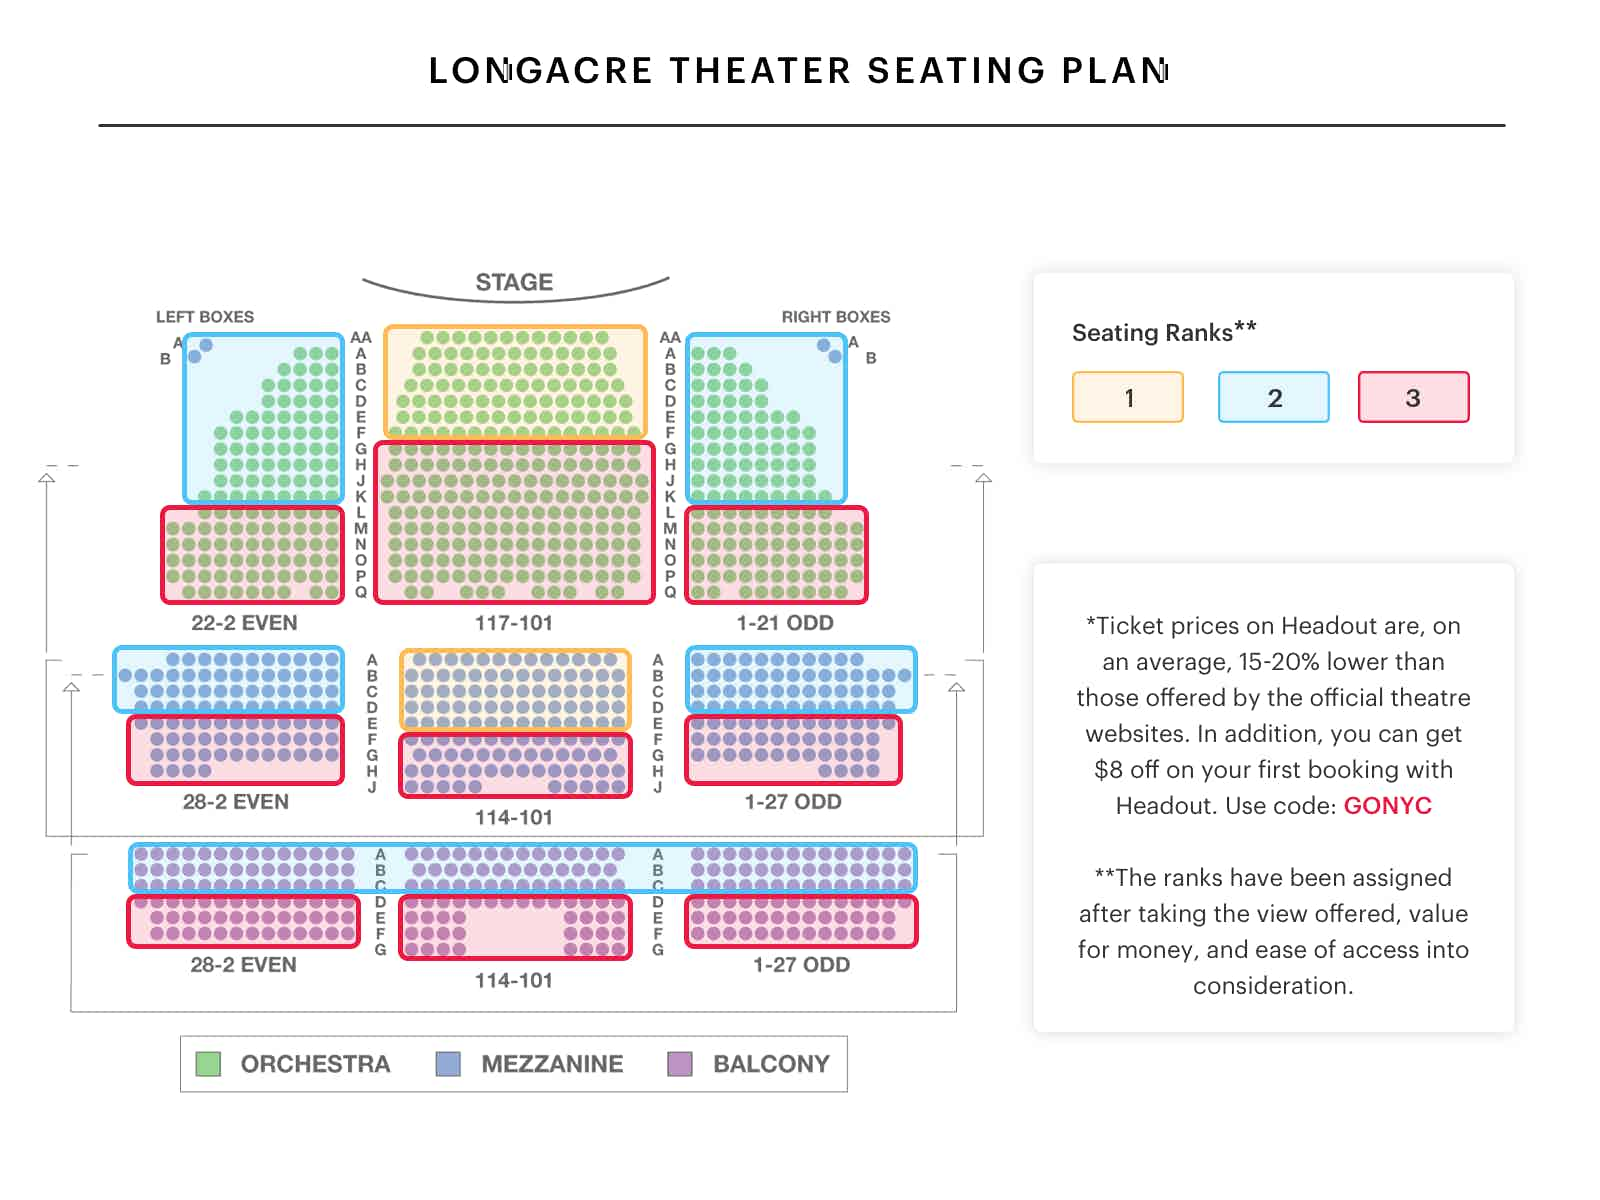 Your a to z guide to broadway theater seating charts